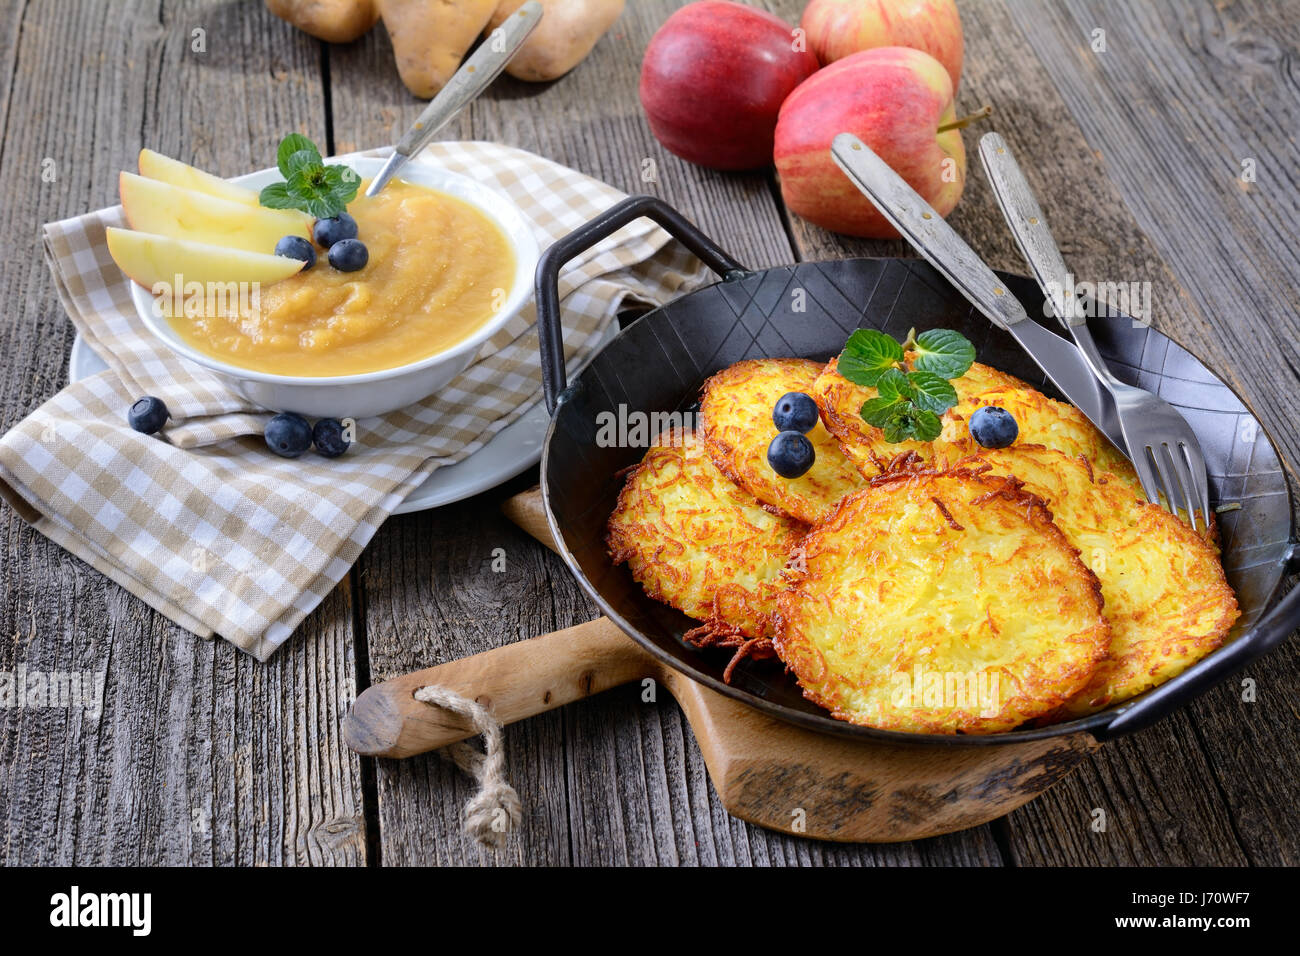 Homemade crispy fried potato pancakes served in an iron frying pan with apple sauce - Stock Image